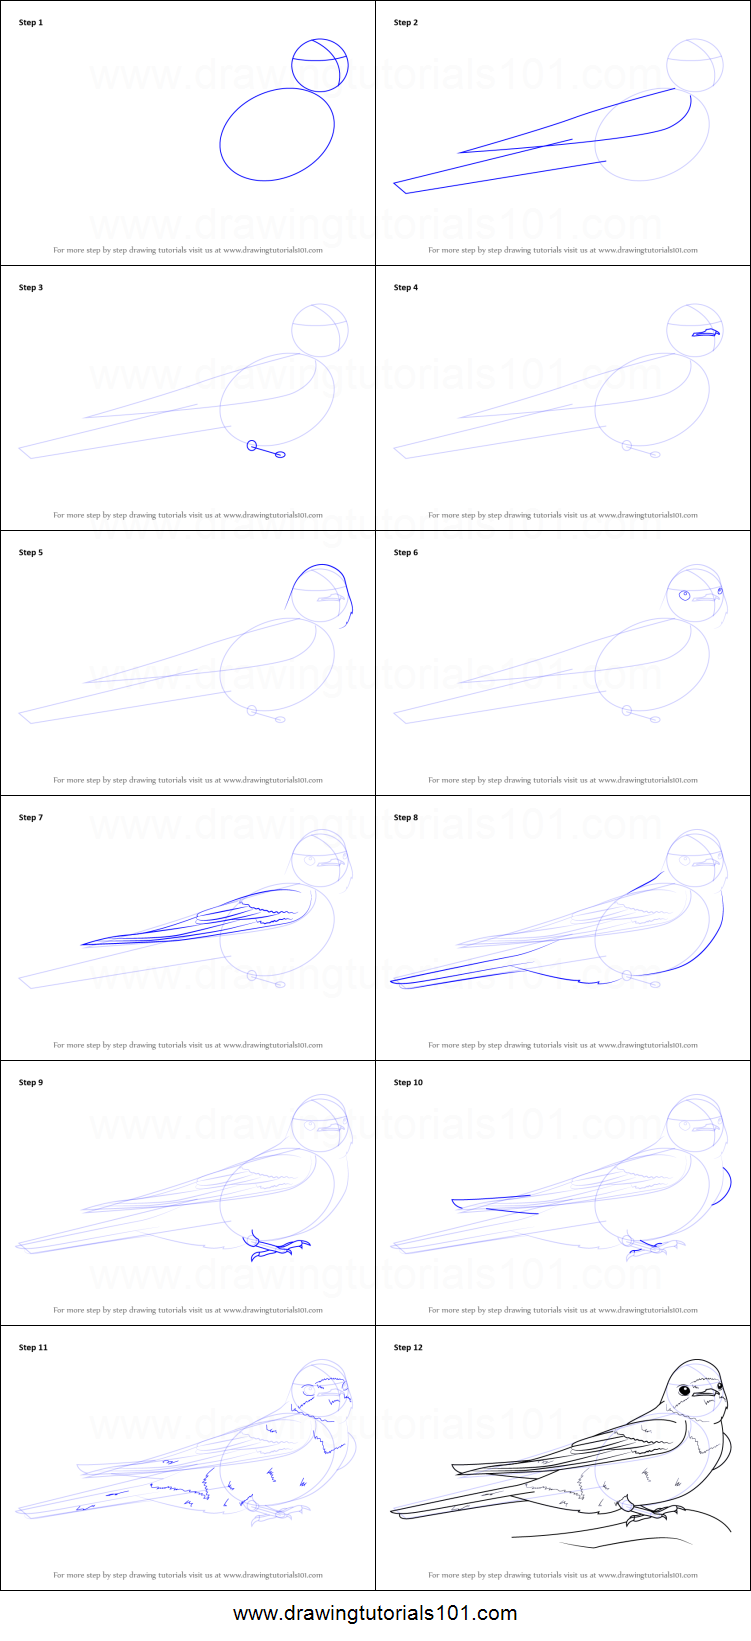 How To Draw A Barn Swallow Printable Step By Drawing Sheet DrawingTutorials101